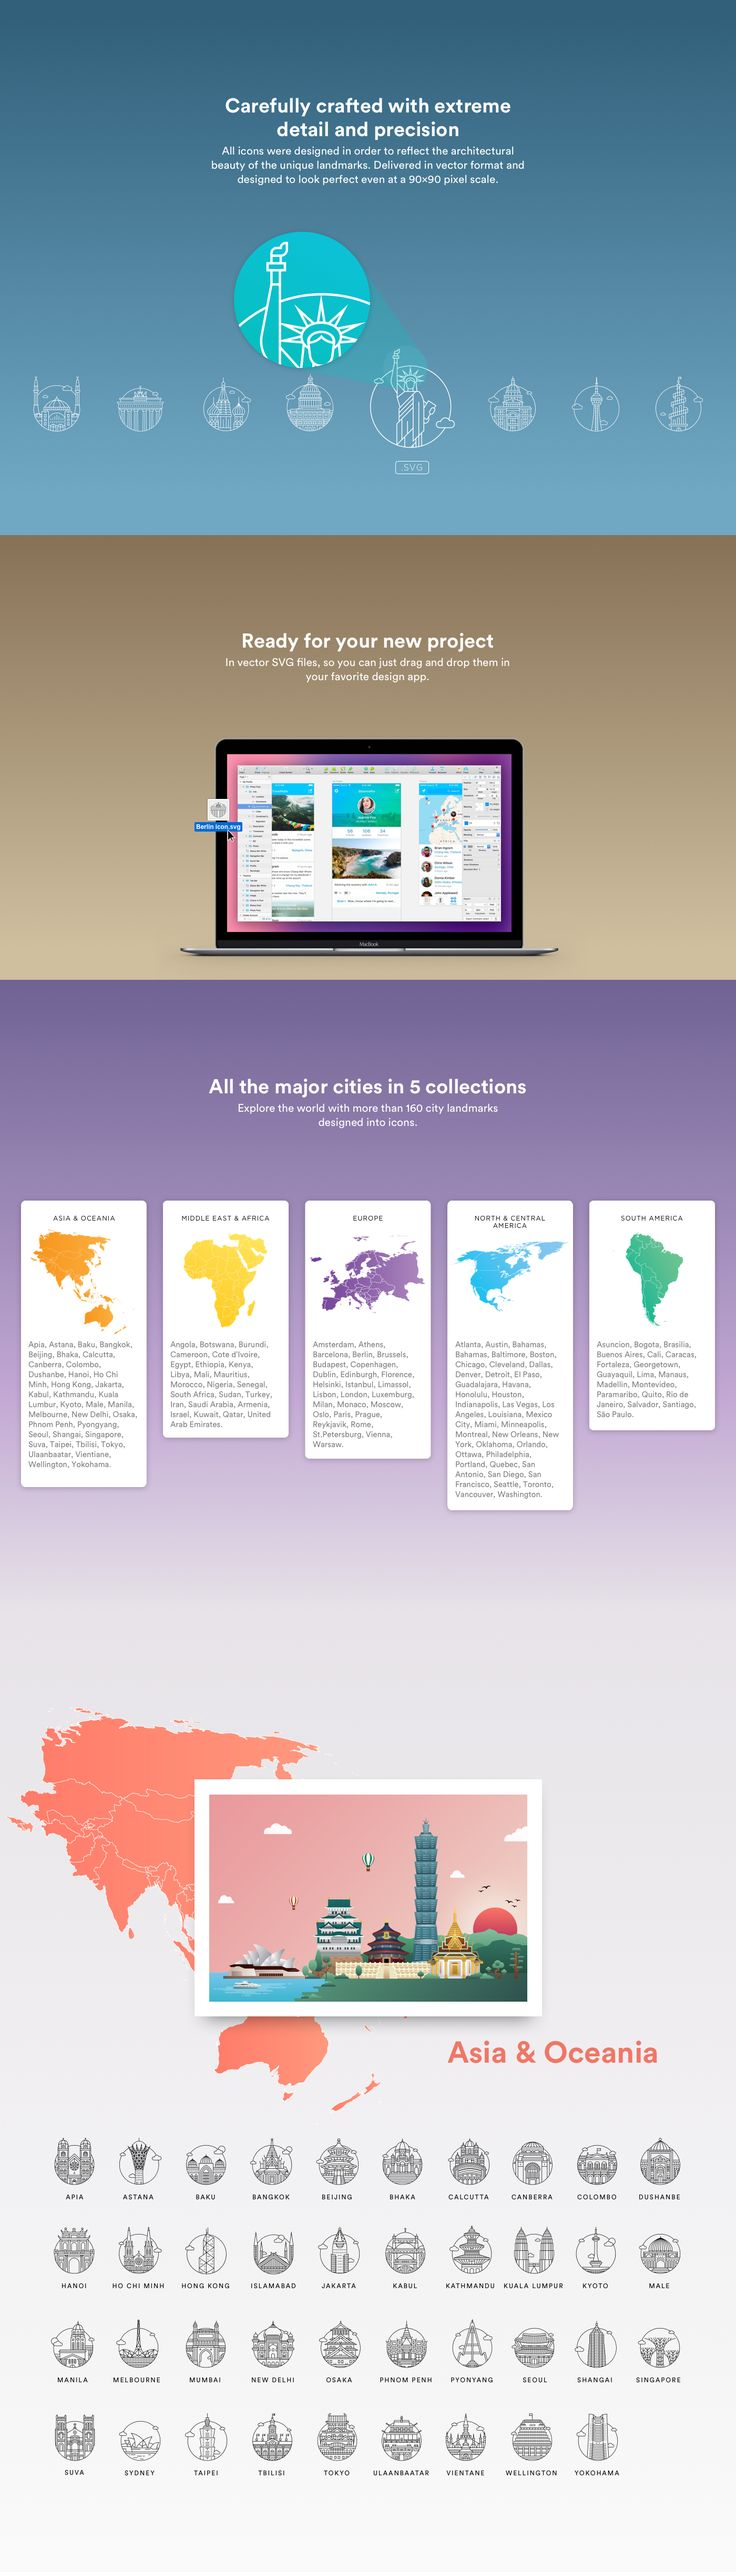 A 5 month project led to the creation of 5 collections of unique icons. With over 160 cities, the world city icons collections are one of the most extensive ones in the web. All the icons are available for download in vector format for you next project.